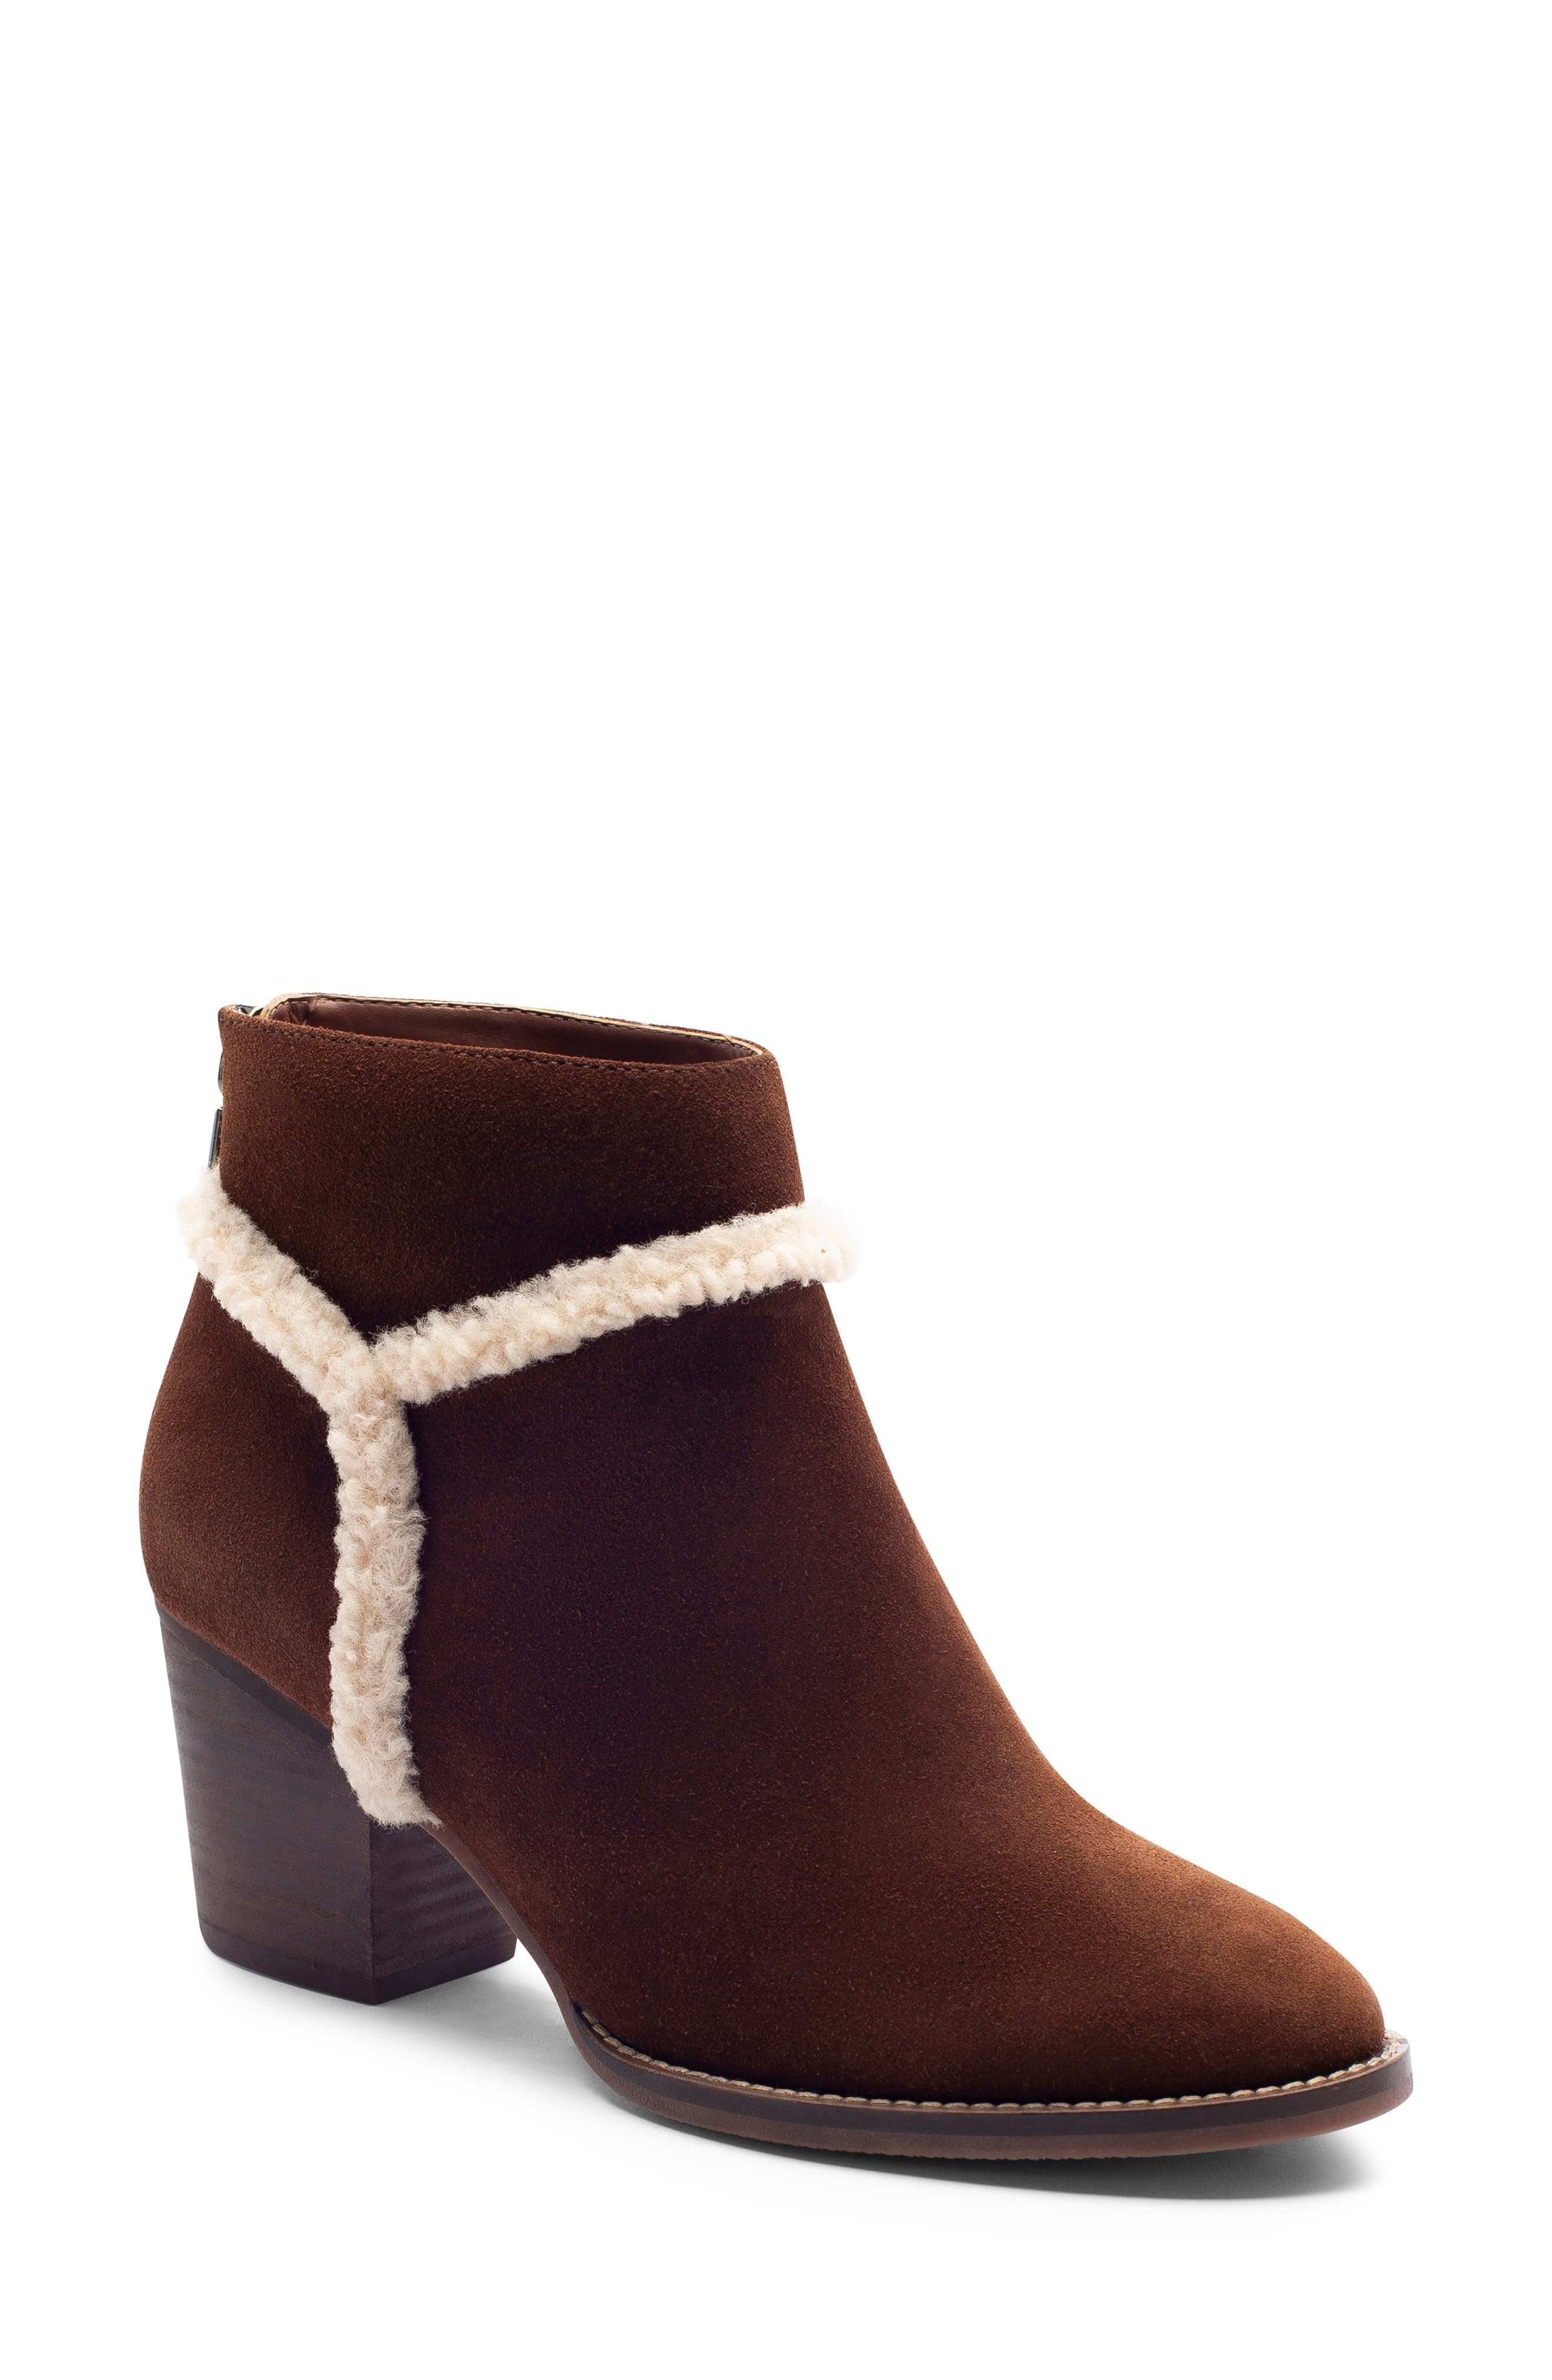 Netti Waterproof Bootie,                             Main thumbnail 1, color,                             CHESTNUT SUEDE